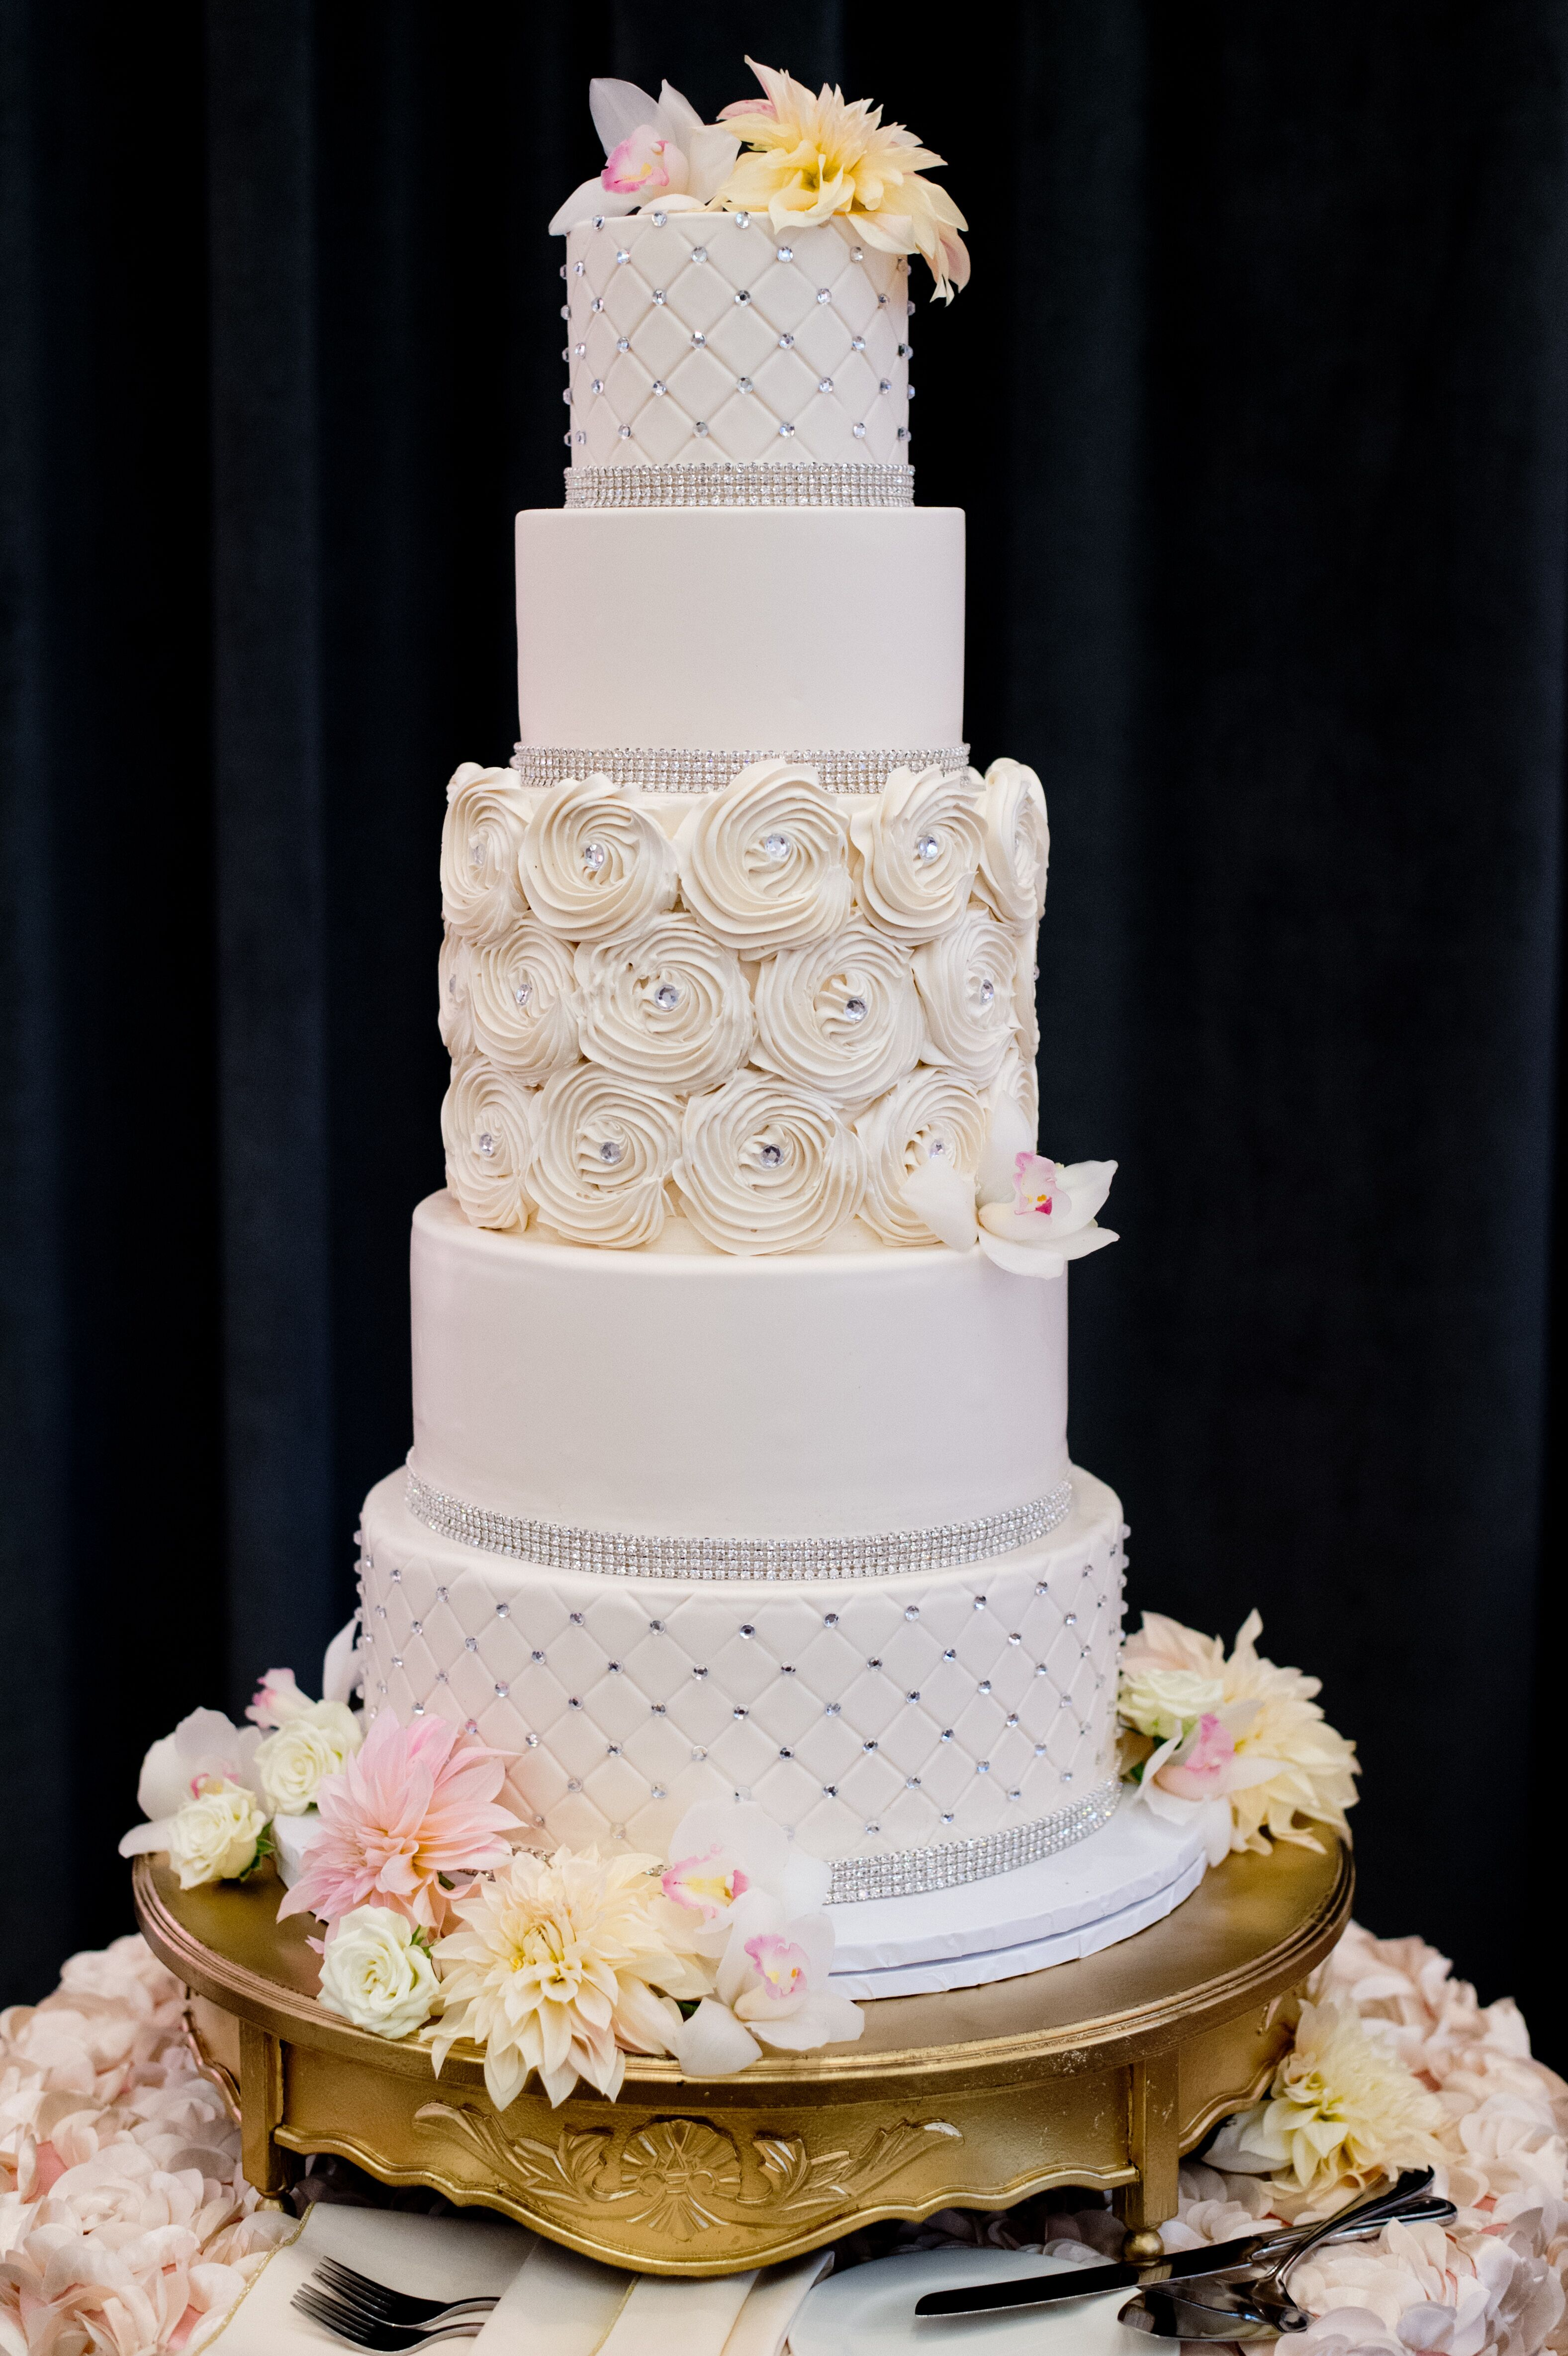 Five Tier Wedding Cake With Iced Rose Detailing